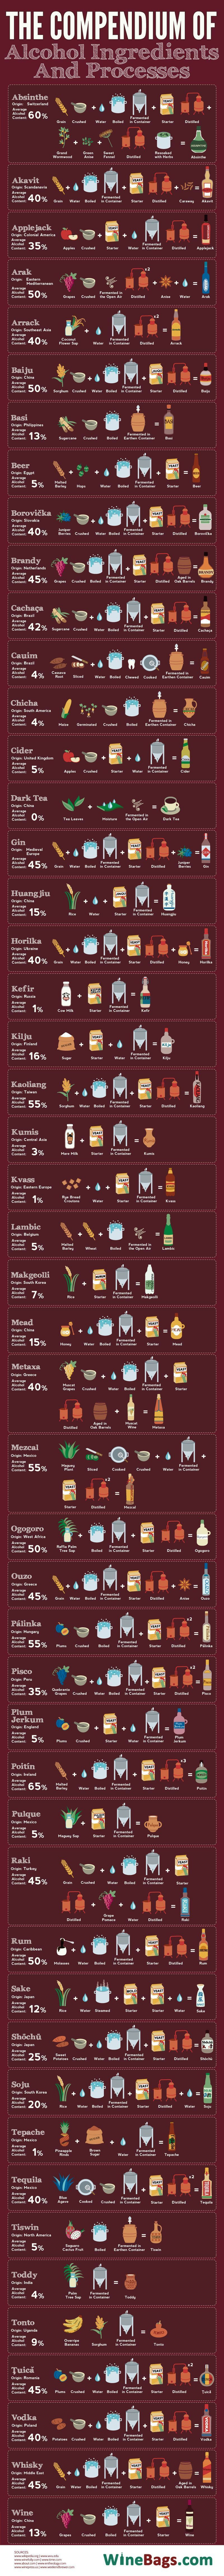 How To Home Brew 49 Different Types Of Alcohol Alcoholic Drinks Around The World Popular Alcoholic Drinks Most Popular Alcoholic Drinks